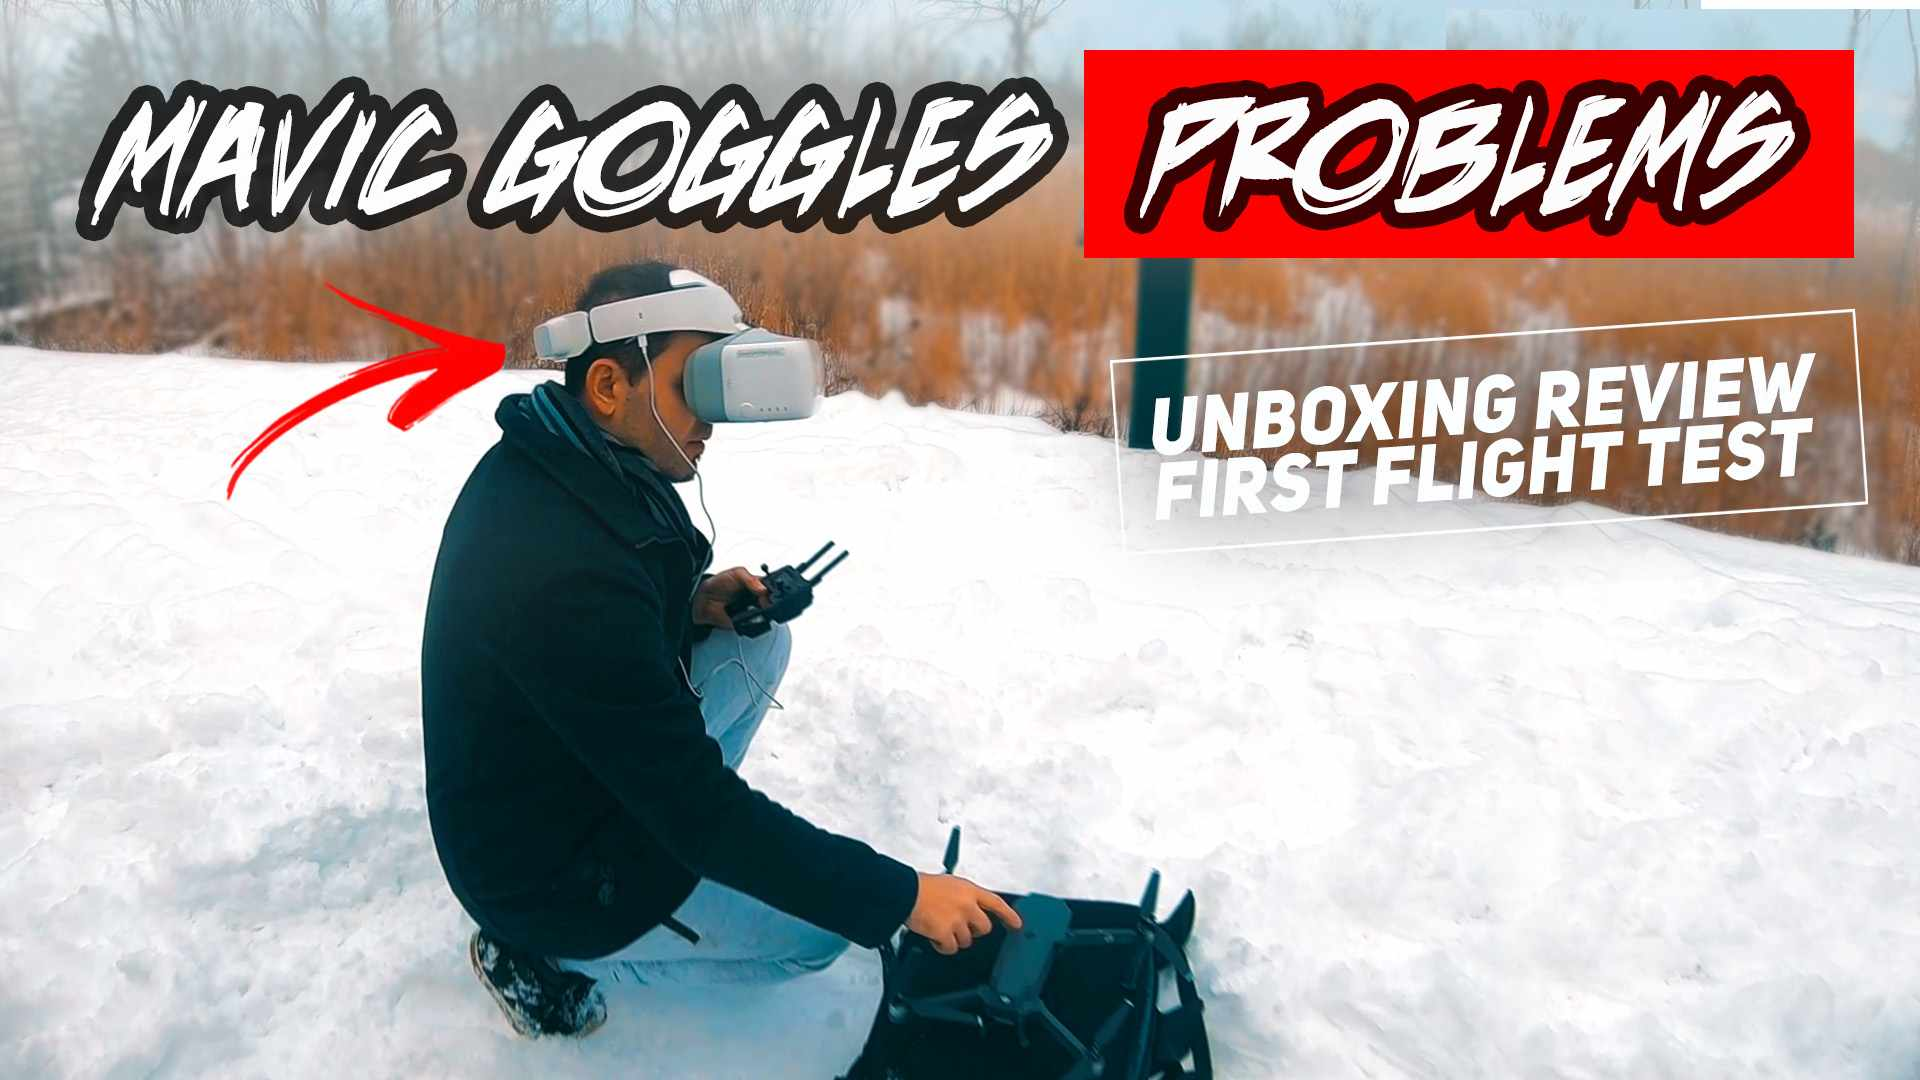 DJI MAVIC GOGGLES FAIL - First Flight Test and Unboxing Review Didn't Go as Planned